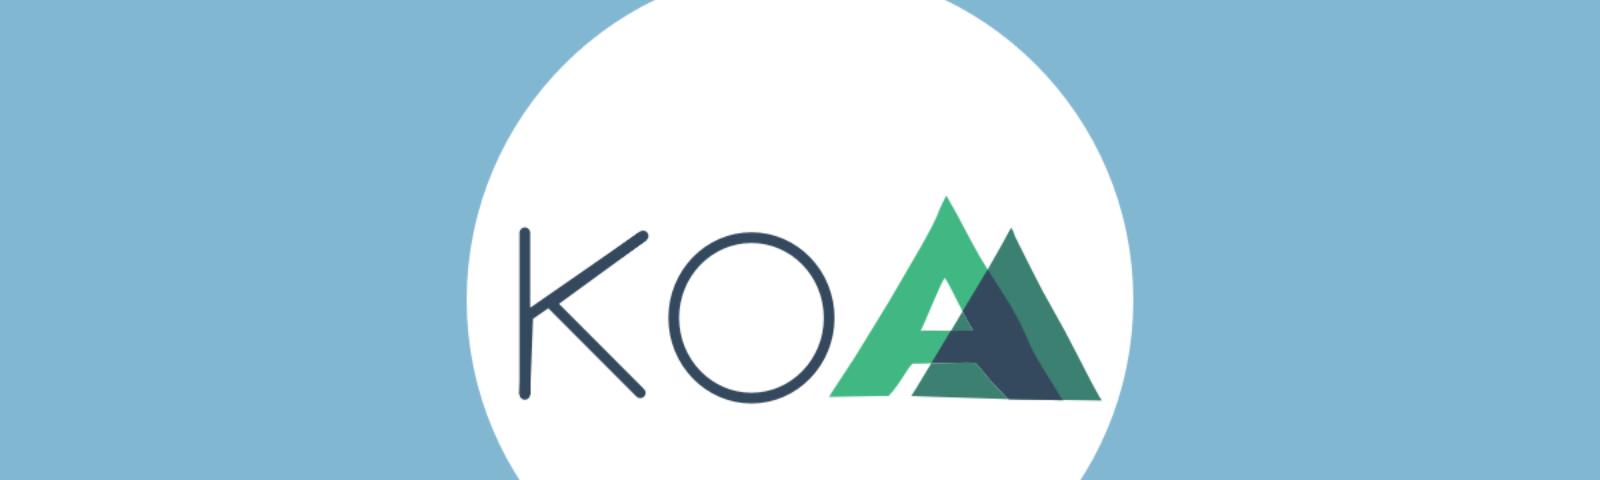 Writing koa/nuxt applications - ITNEXT